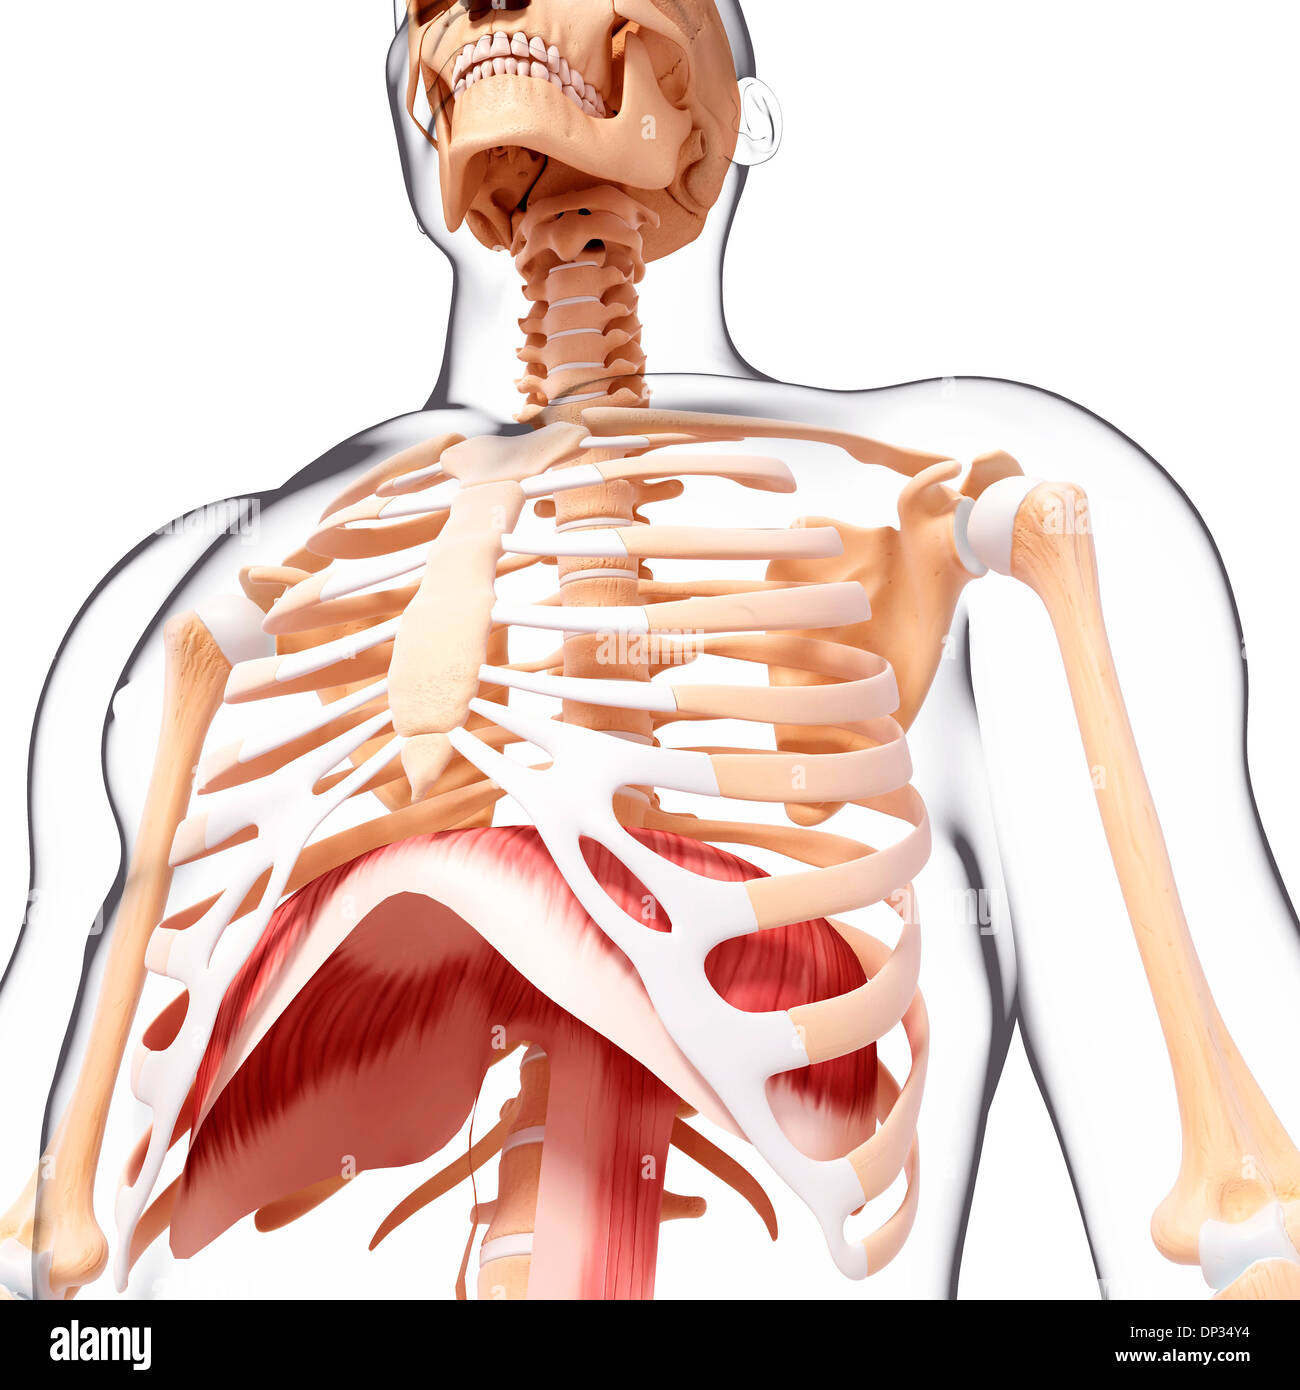 Diaphragm Chest Stock Photos Diaphragm Chest Stock Images Page 3